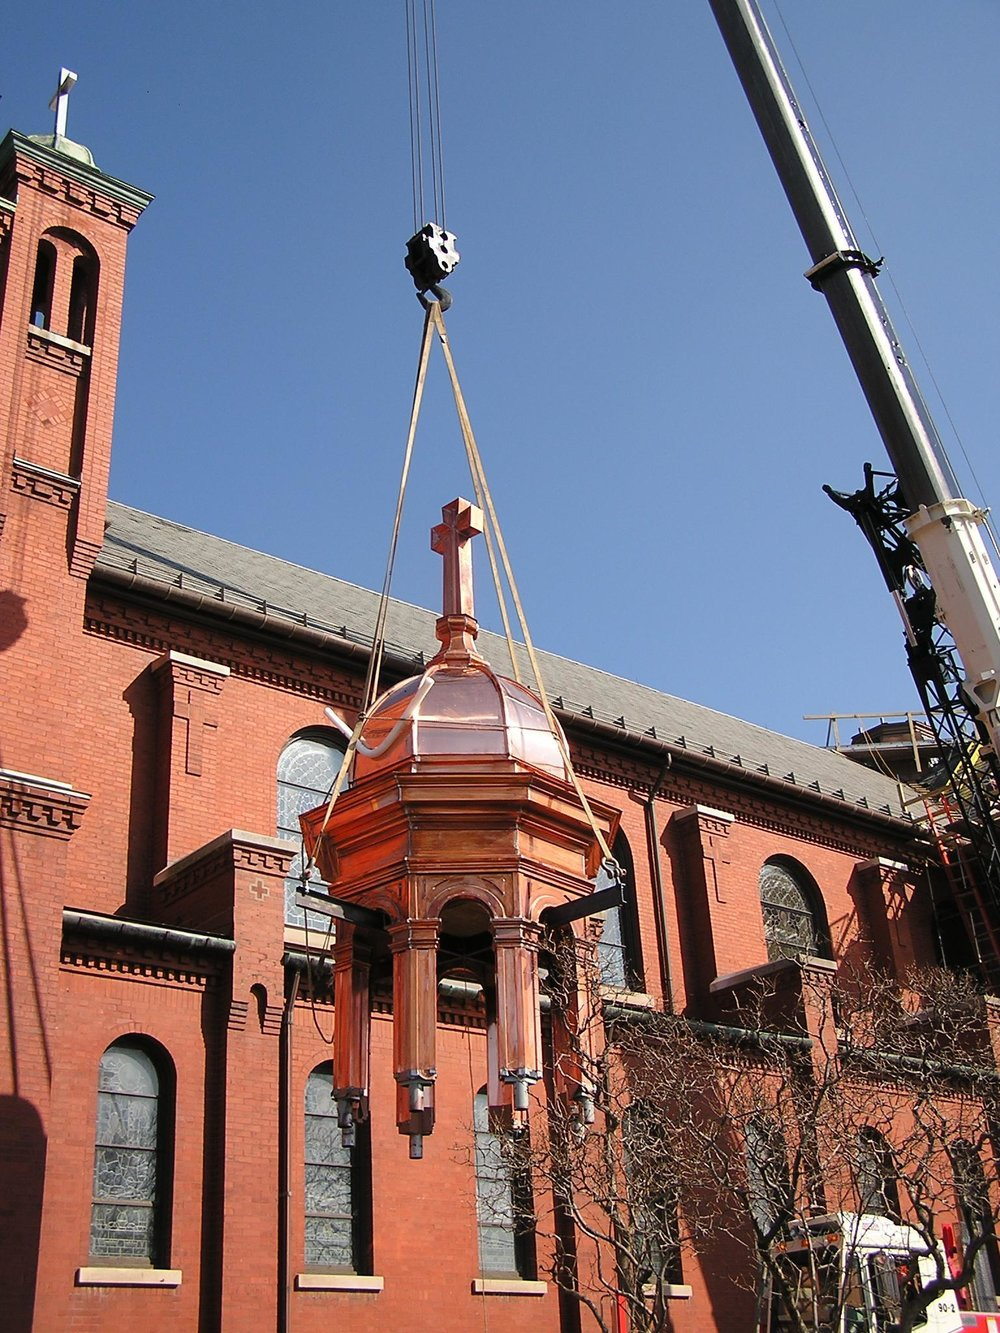 Workers with Leo J. Roth Corporation installing copper domes, these domes were fabricated in Leo J. Roth's Sheet Metal Fabrication Facility